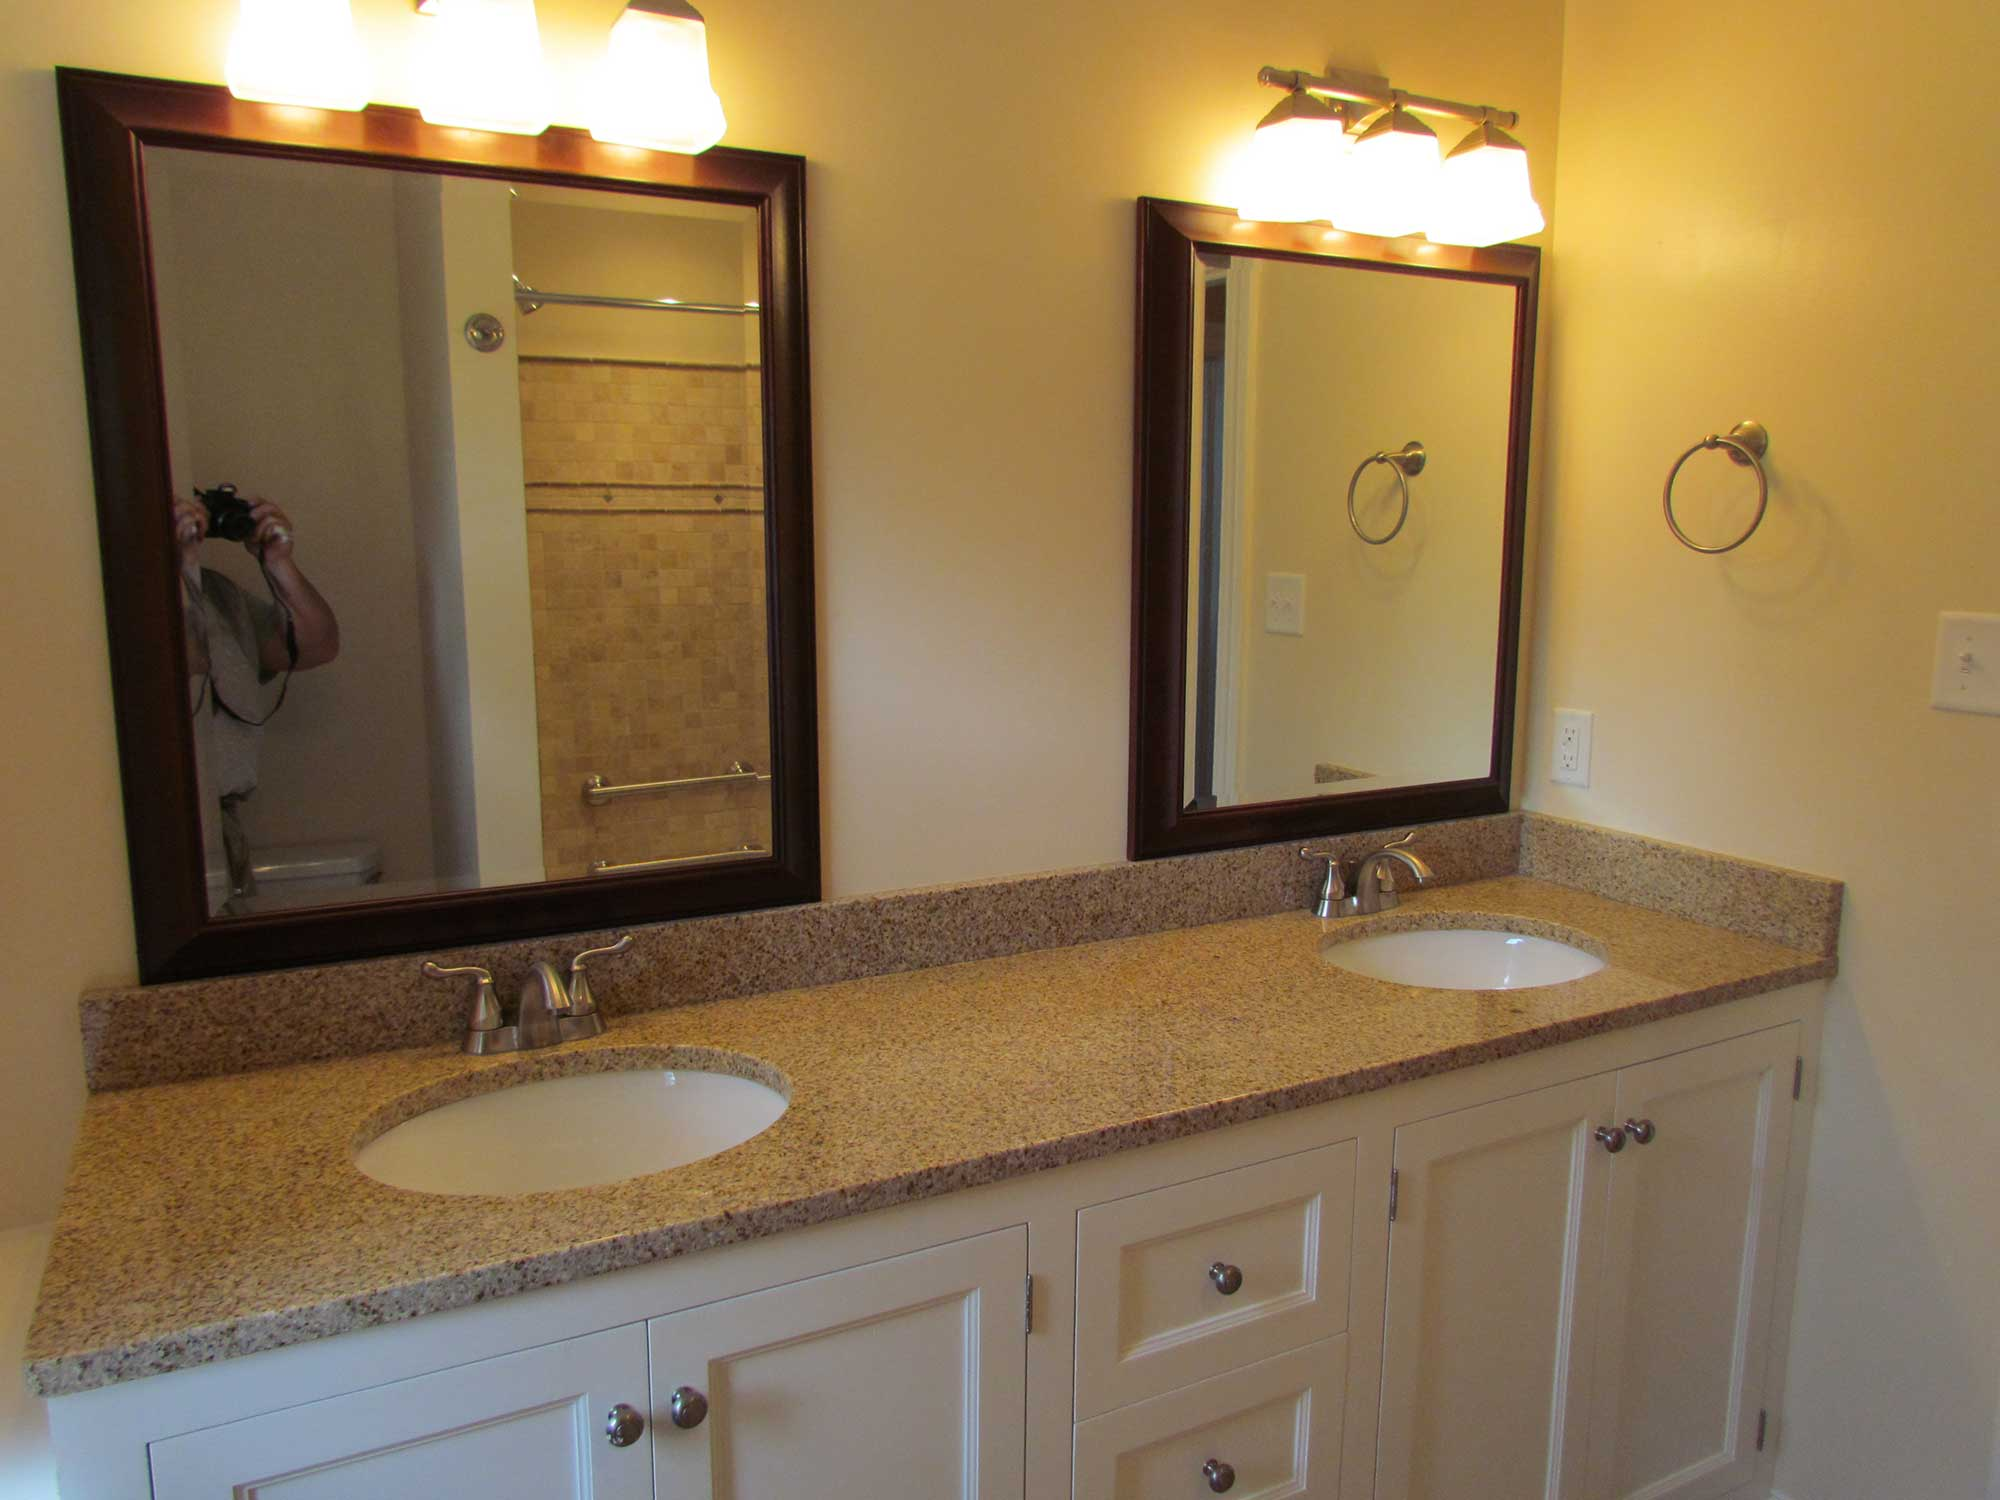 Bathroom Remodel In Midlothian RVA Remodeling LLC - How to completely remodel a bathroom